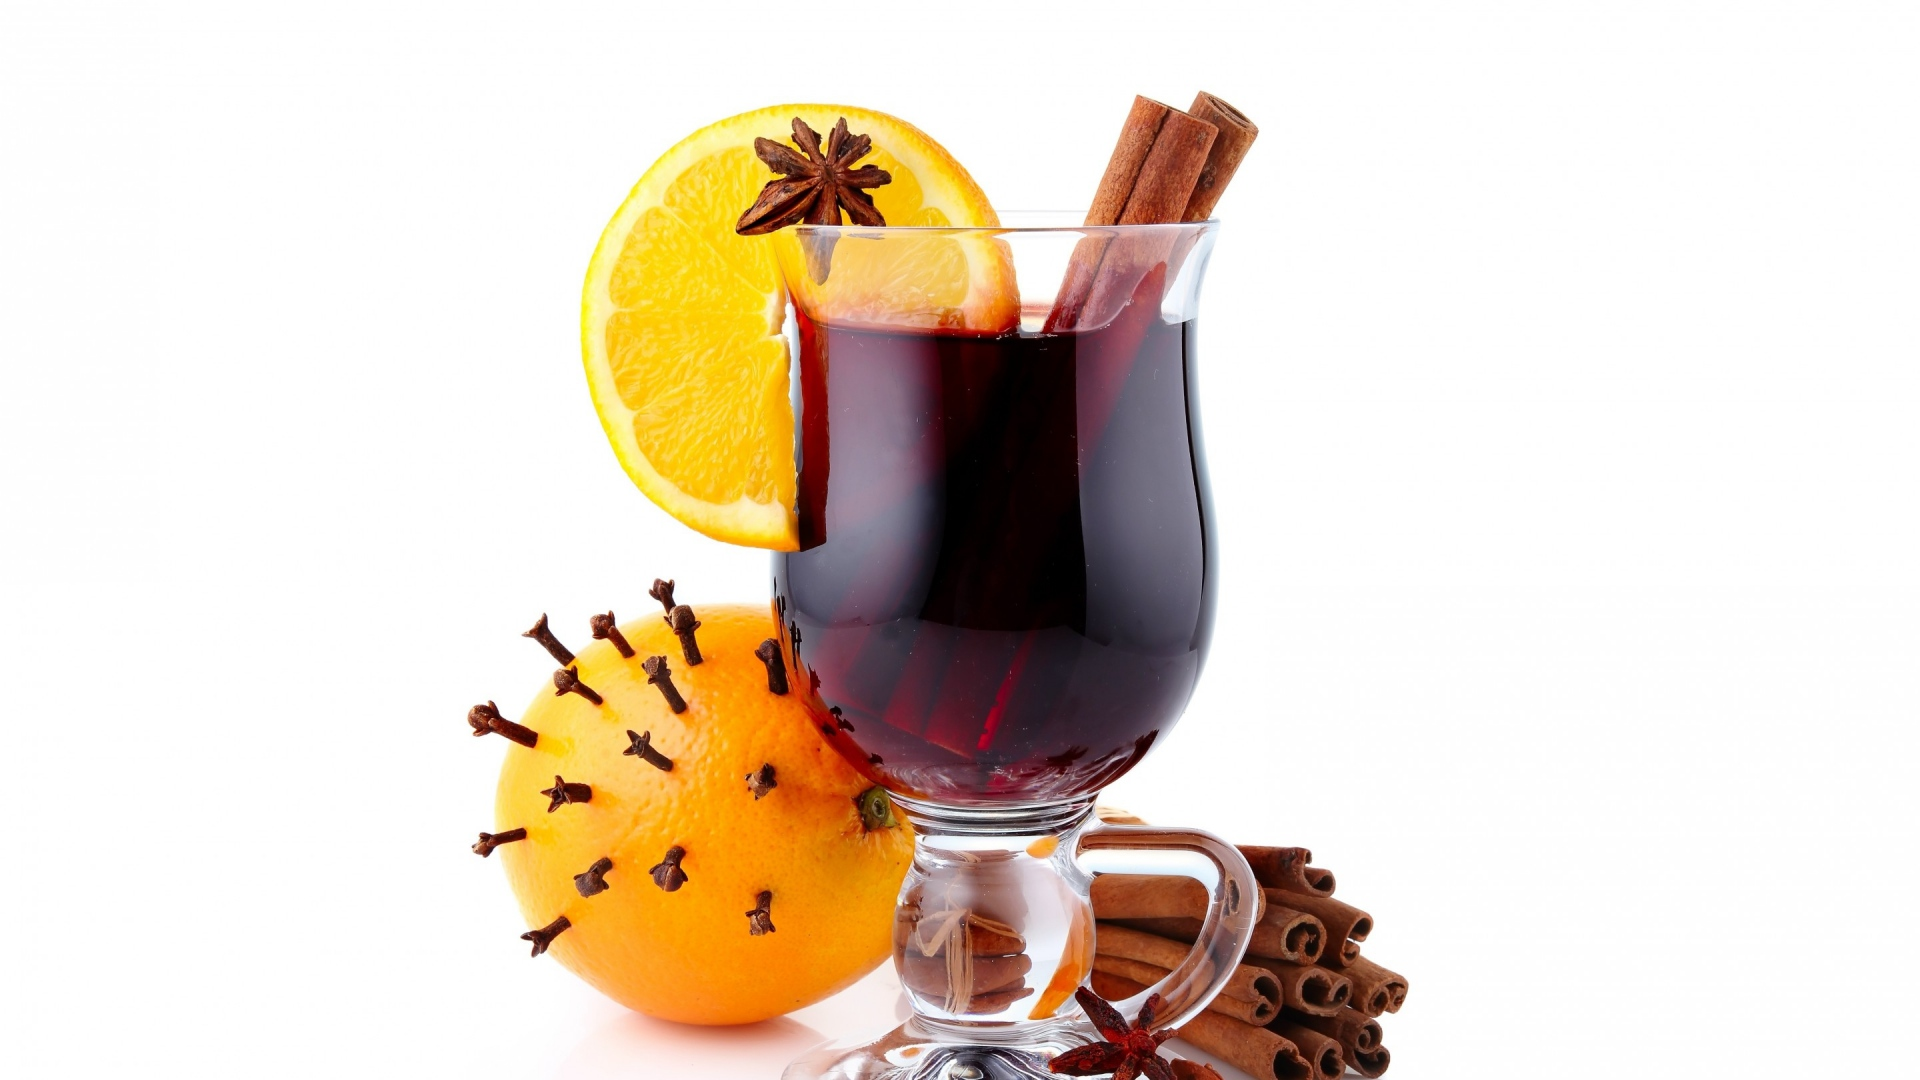 Get The Latest Mulled Wine Drink Glass News Pictures And Videos Learn All About From Wallpapers4uorg Your Wallpaper